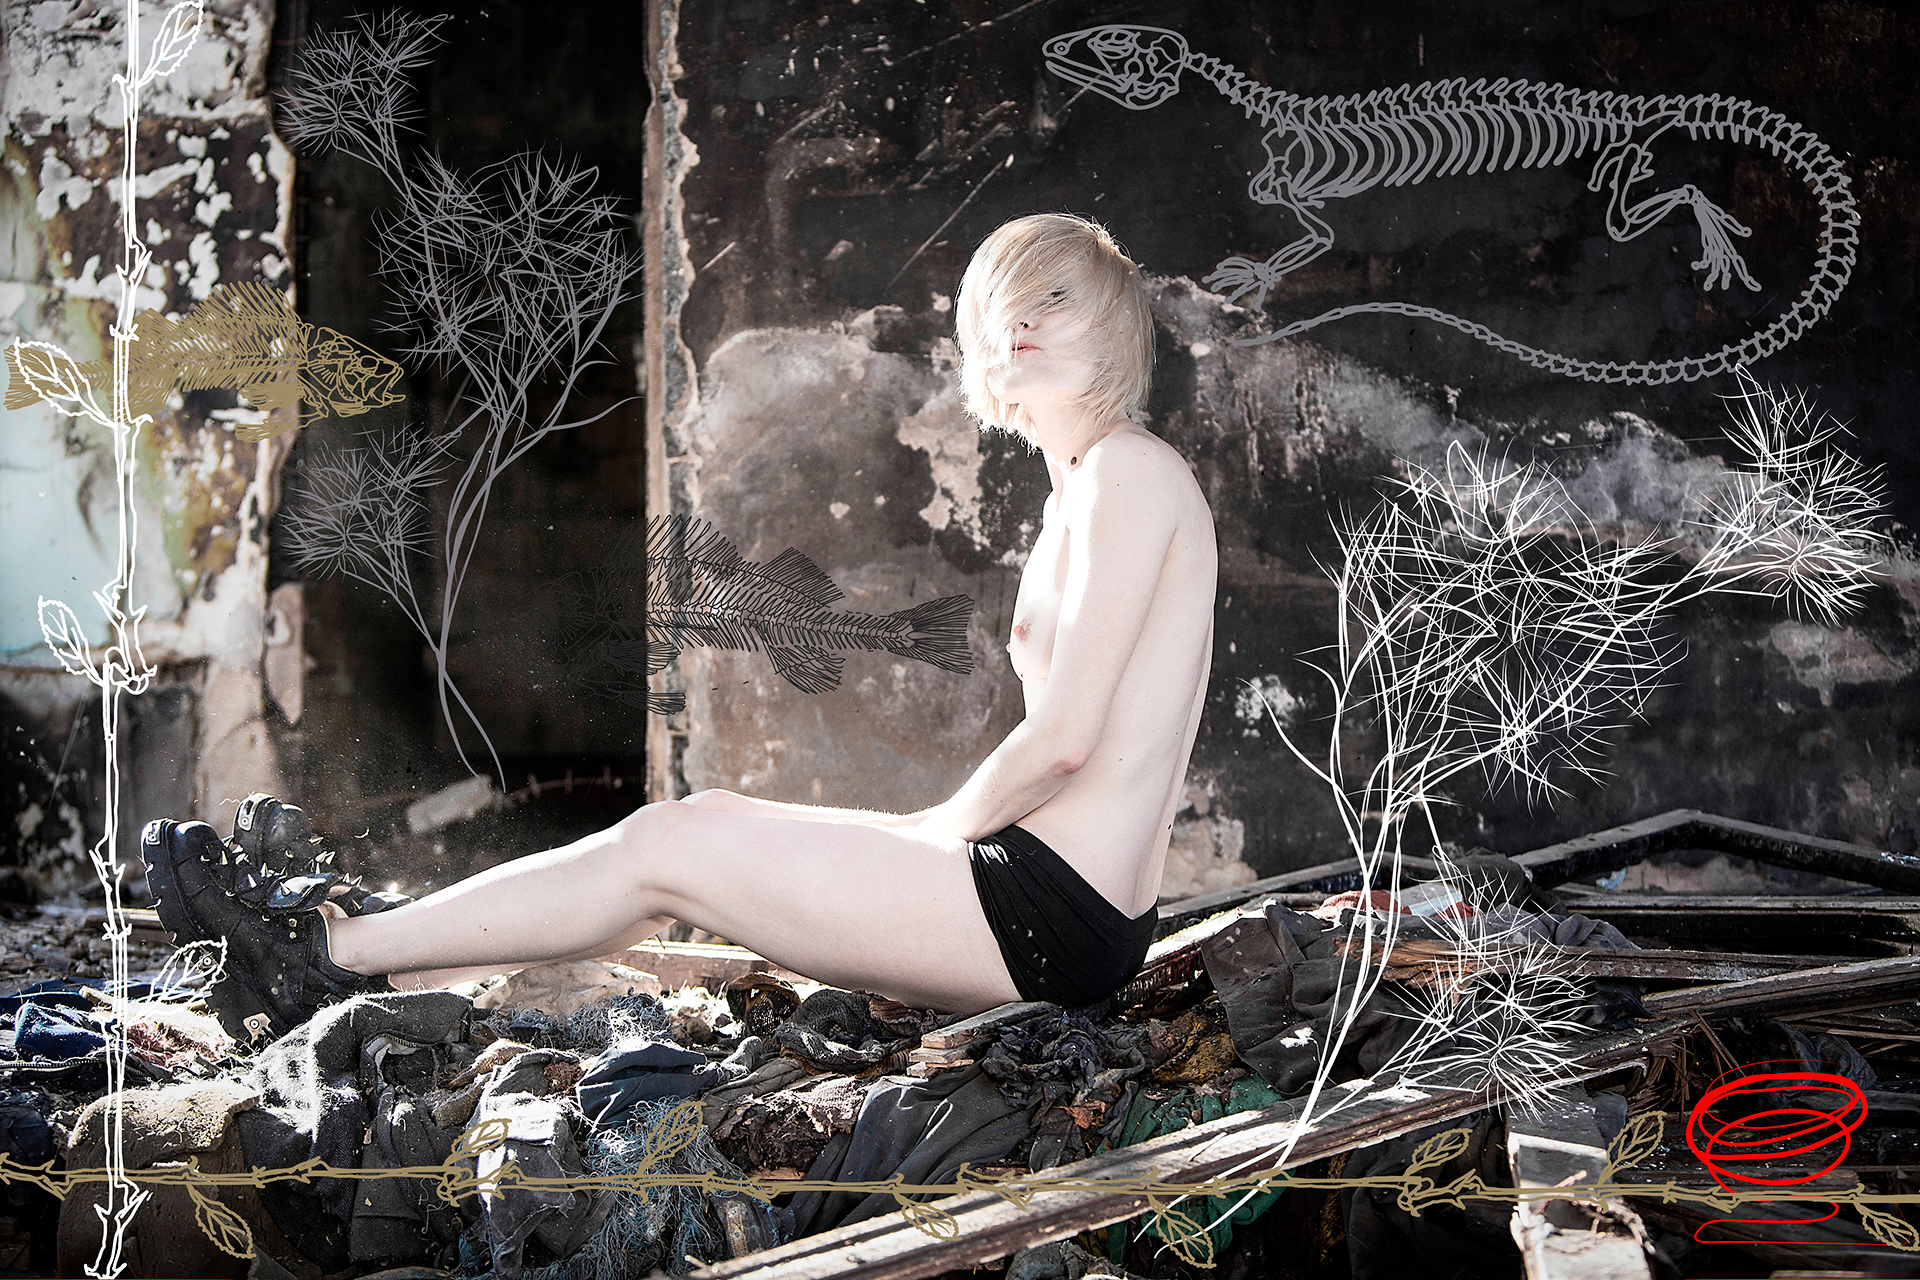 Peace of Meat, exhibition, Photographer, Ivan Bessedin, Model, Fashion, designer, Indira Muratova, Almaty, art, model, style, abandoned, photo session, photoset, photography, thrash, trash, garbage, pollution, ecology, dirty, girl, naked, nude, concrete, reinforcement, armature